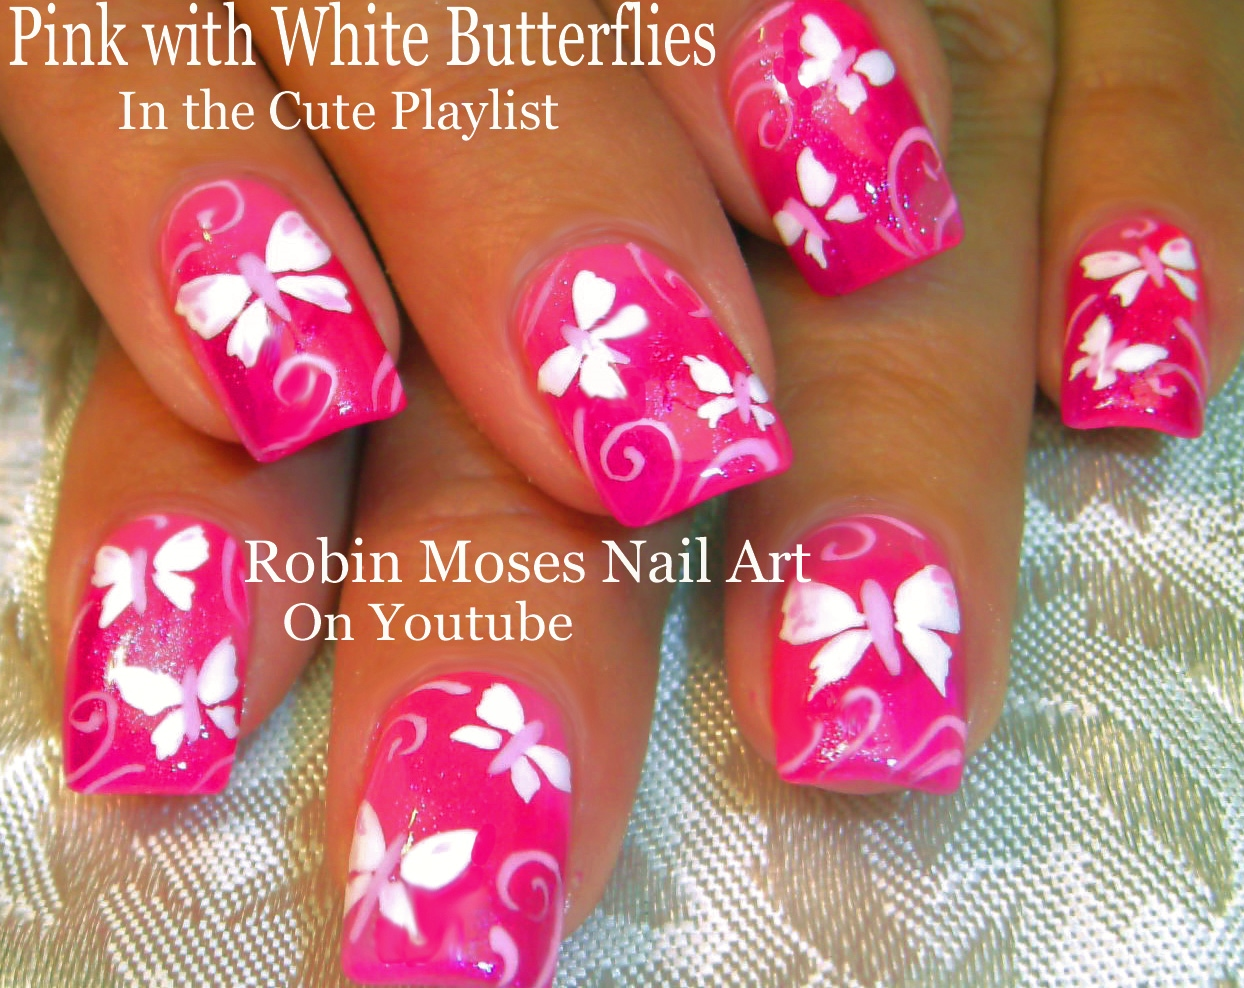 Robin moses nail art neon pink with white butterfly nail art neon pink with white butterfly nail art design tutorial up today prettyinpink prinsesfo Choice Image